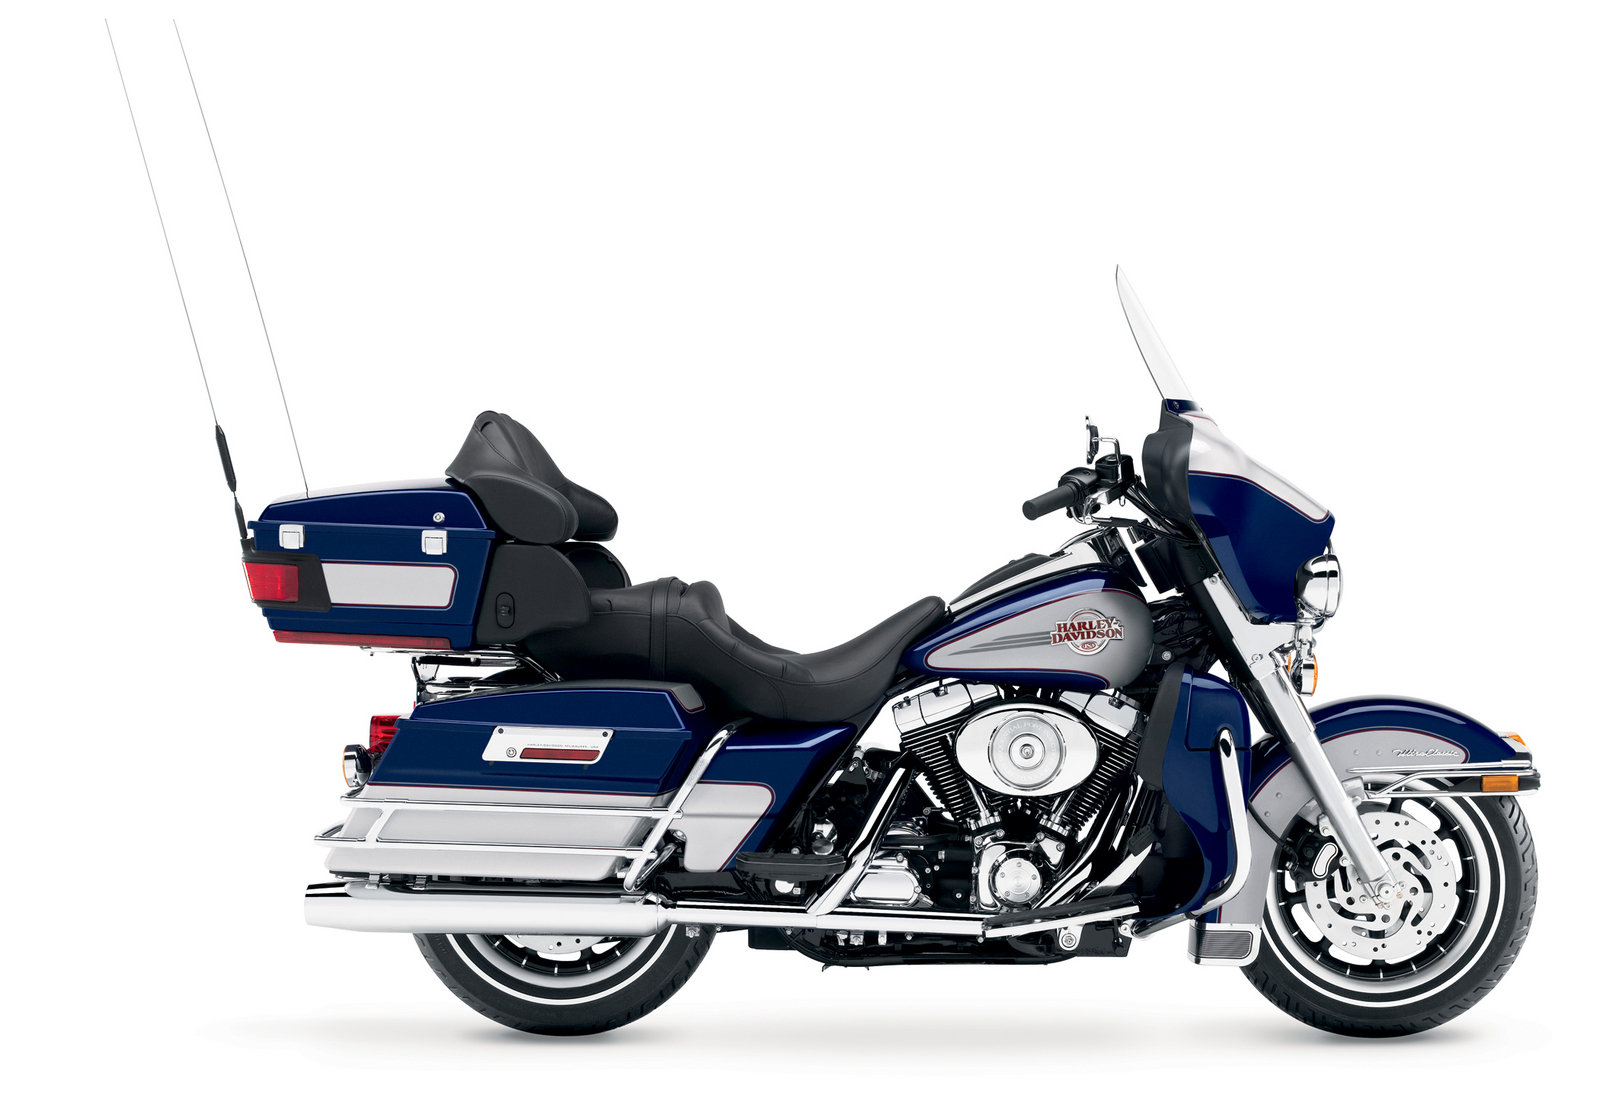 2006 Harley Davidson Ultra Classic Electra Glide Review